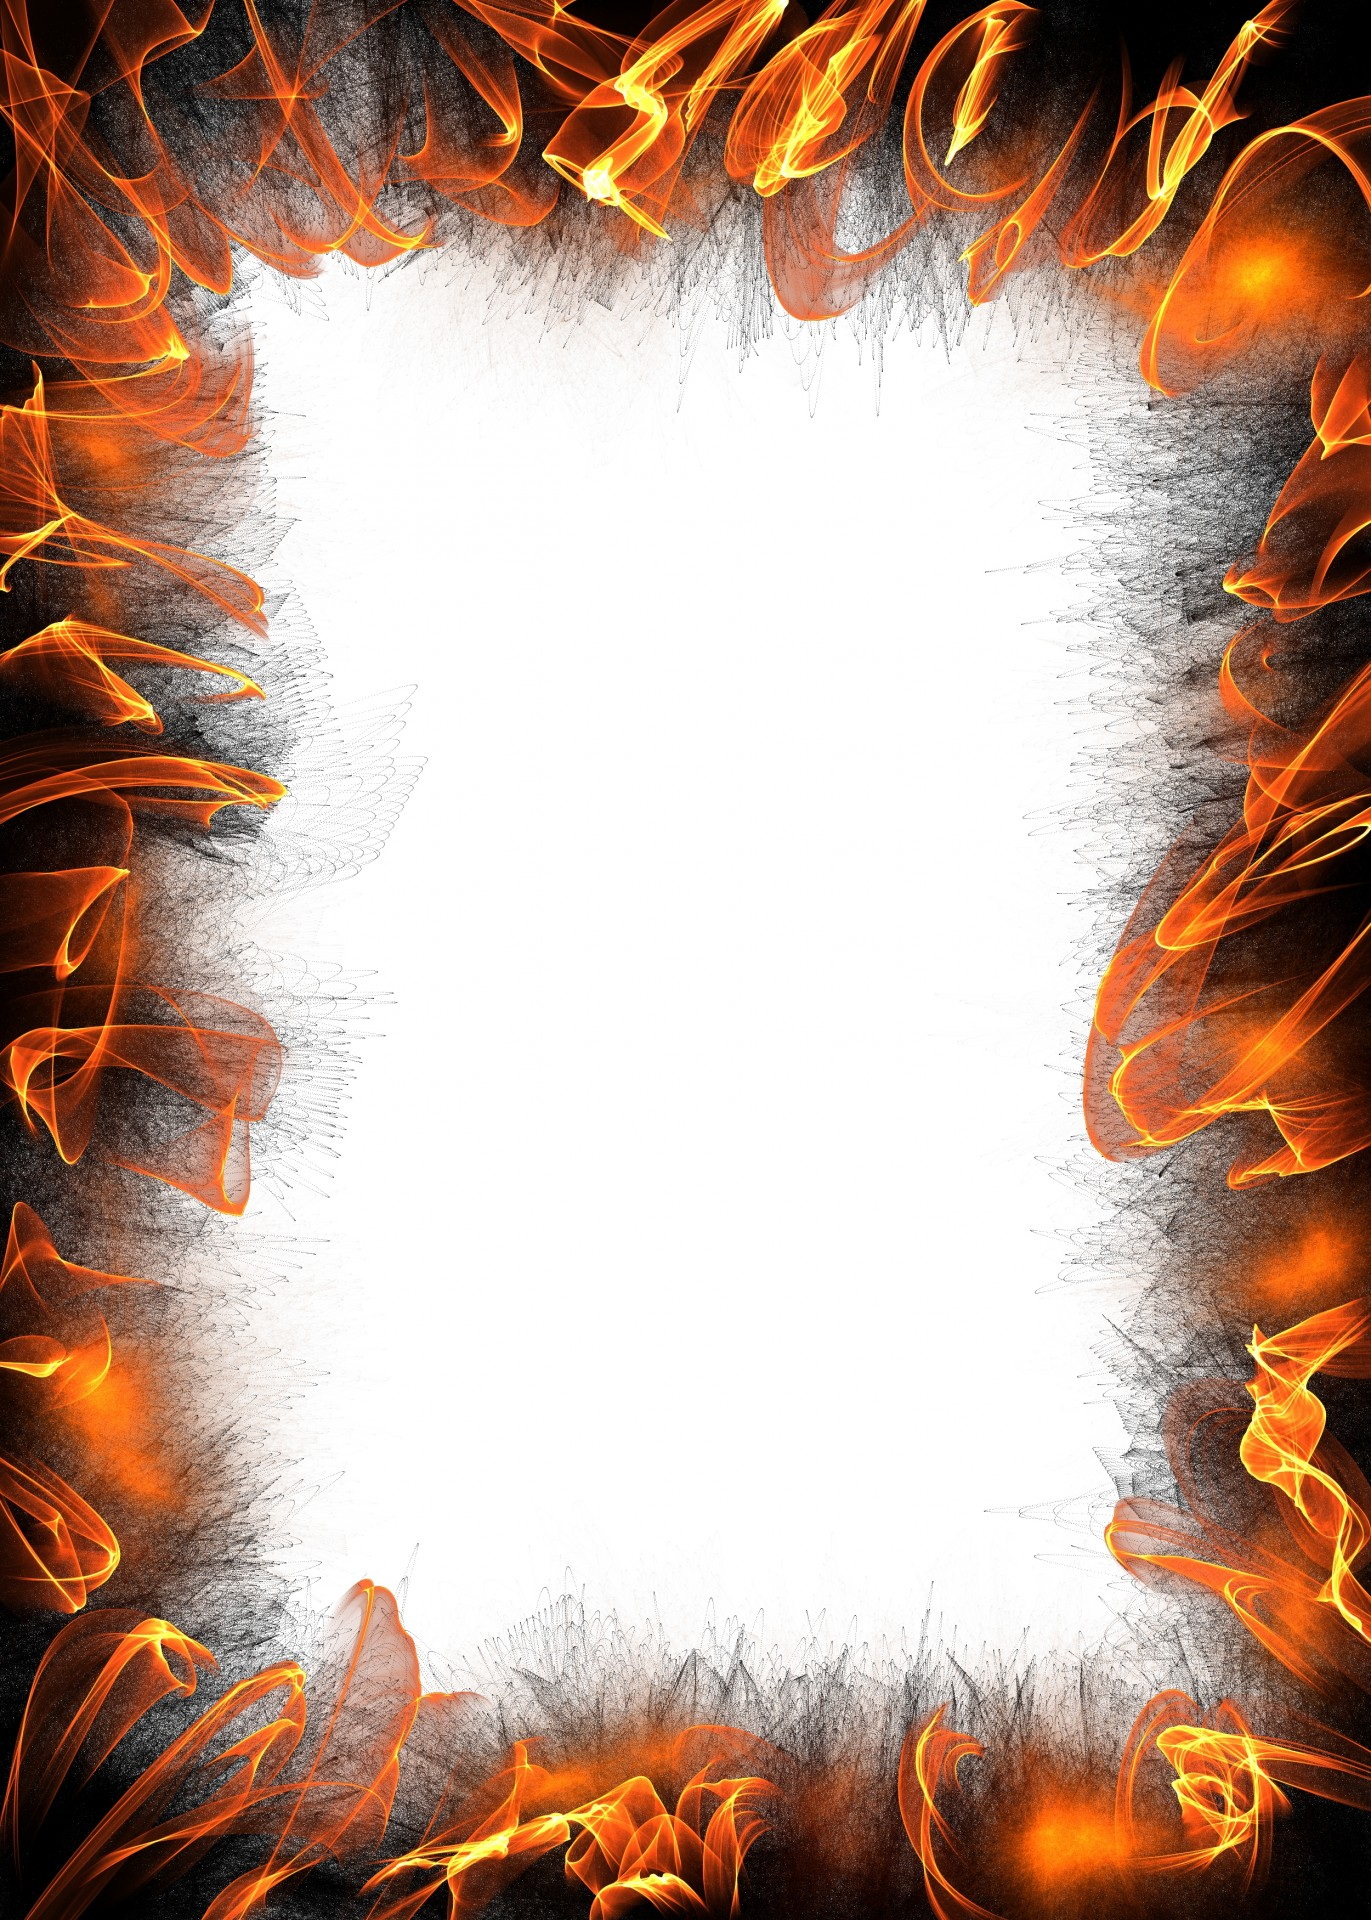 Flames clipart paper. Free frame cliparts download